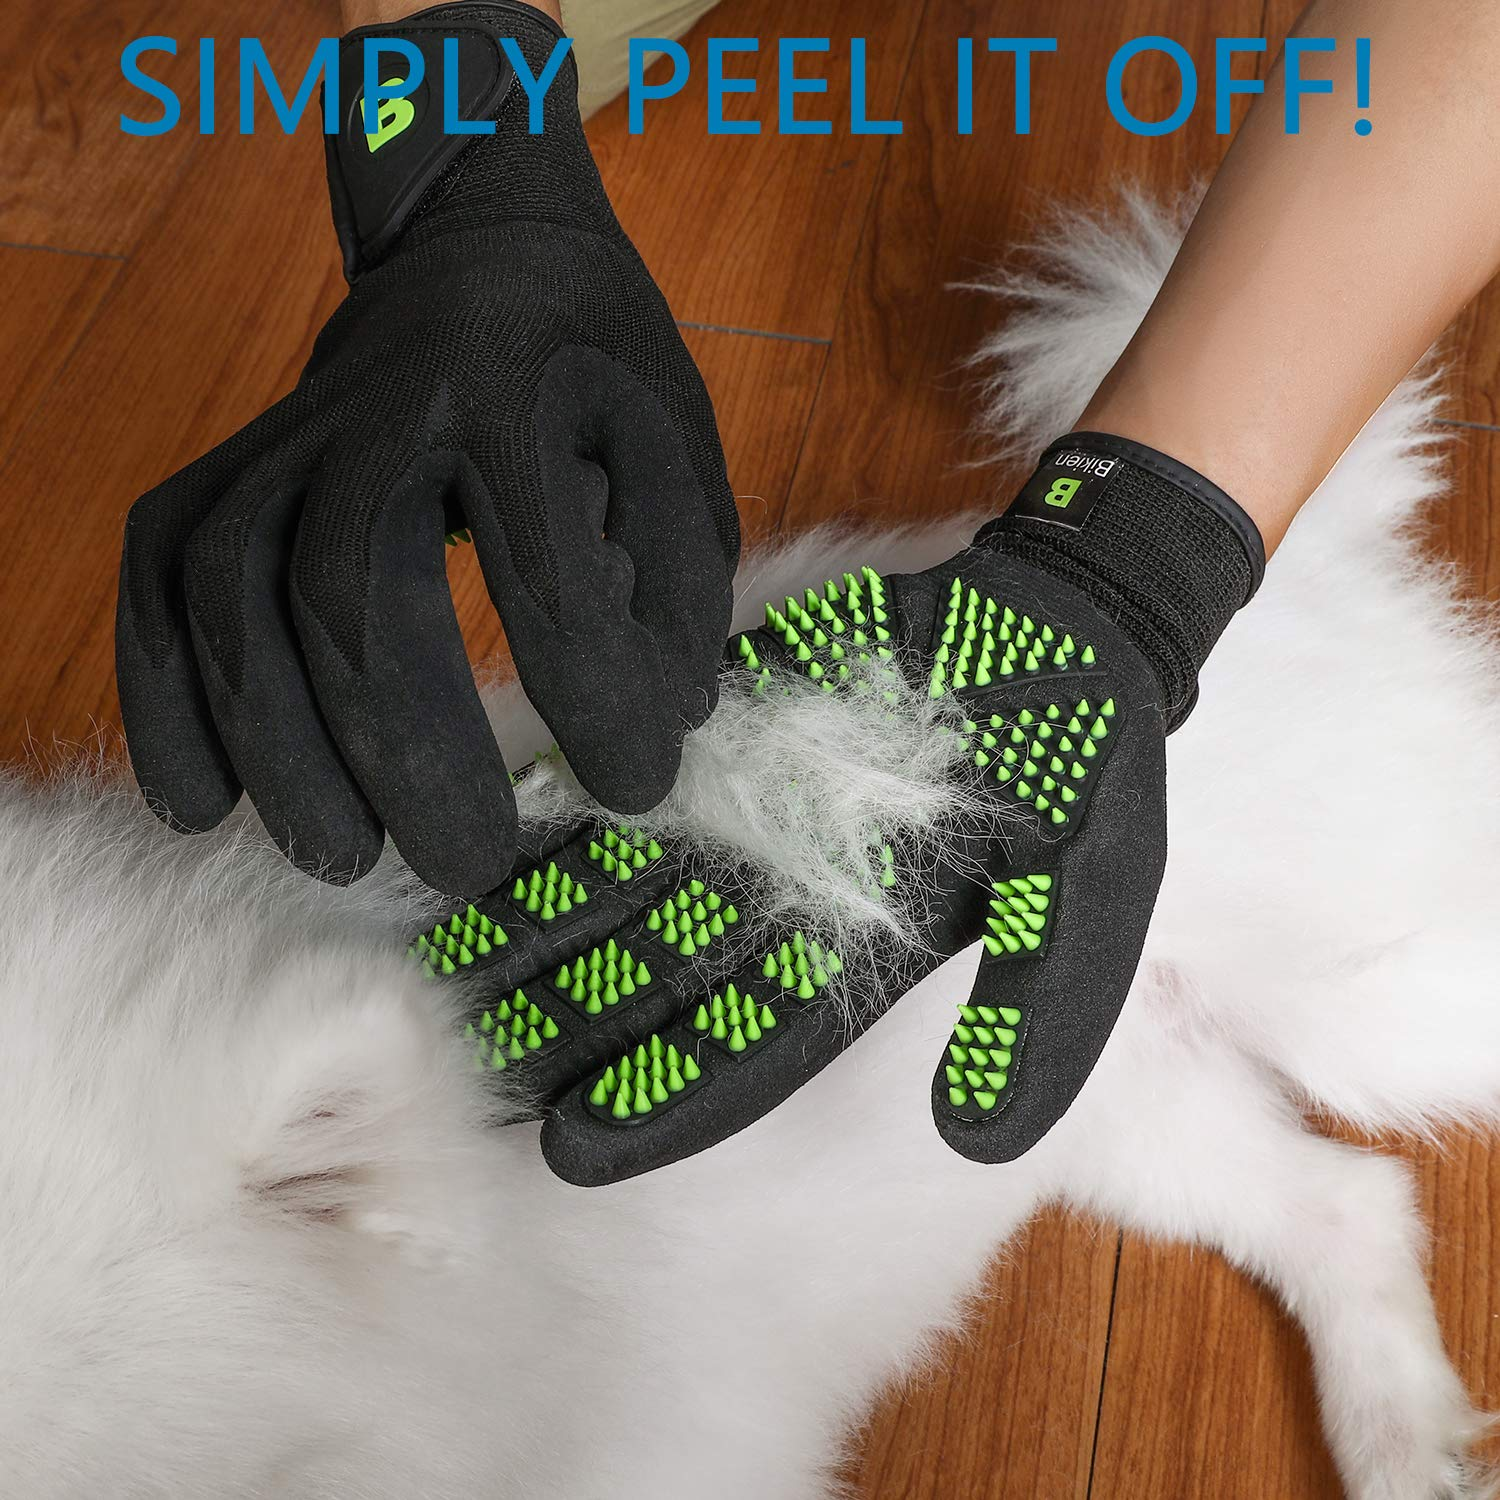 Bikien Pet Grooming Gloves, Dog Horse and Cat Hair Removal Gloves, Enhanced Five Finger Design, 330 Soft Rubber for Shedding, Bathing, Massaging & Hair Removal